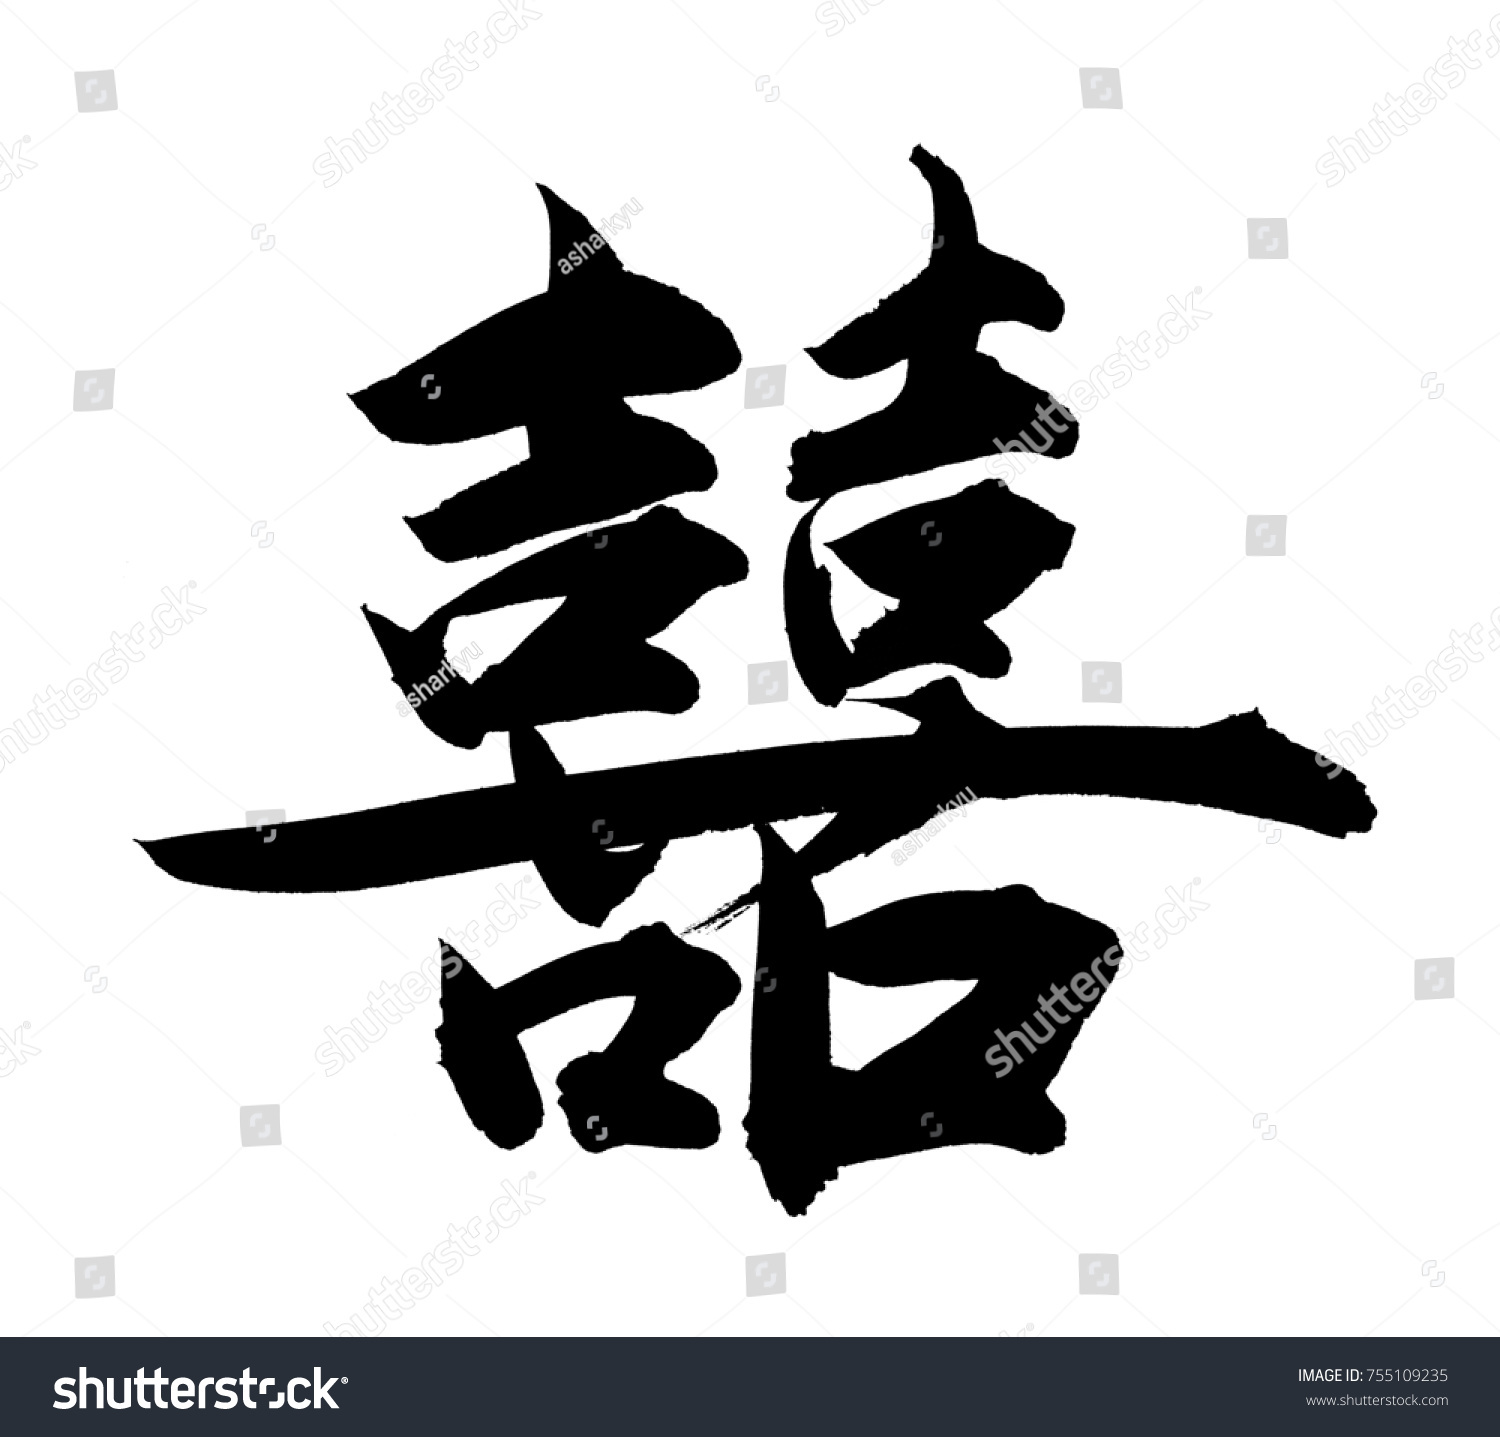 Traditional chinese calligraphy art translates joygladness stock traditional chinese calligraphy art translates joygladness biocorpaavc Images